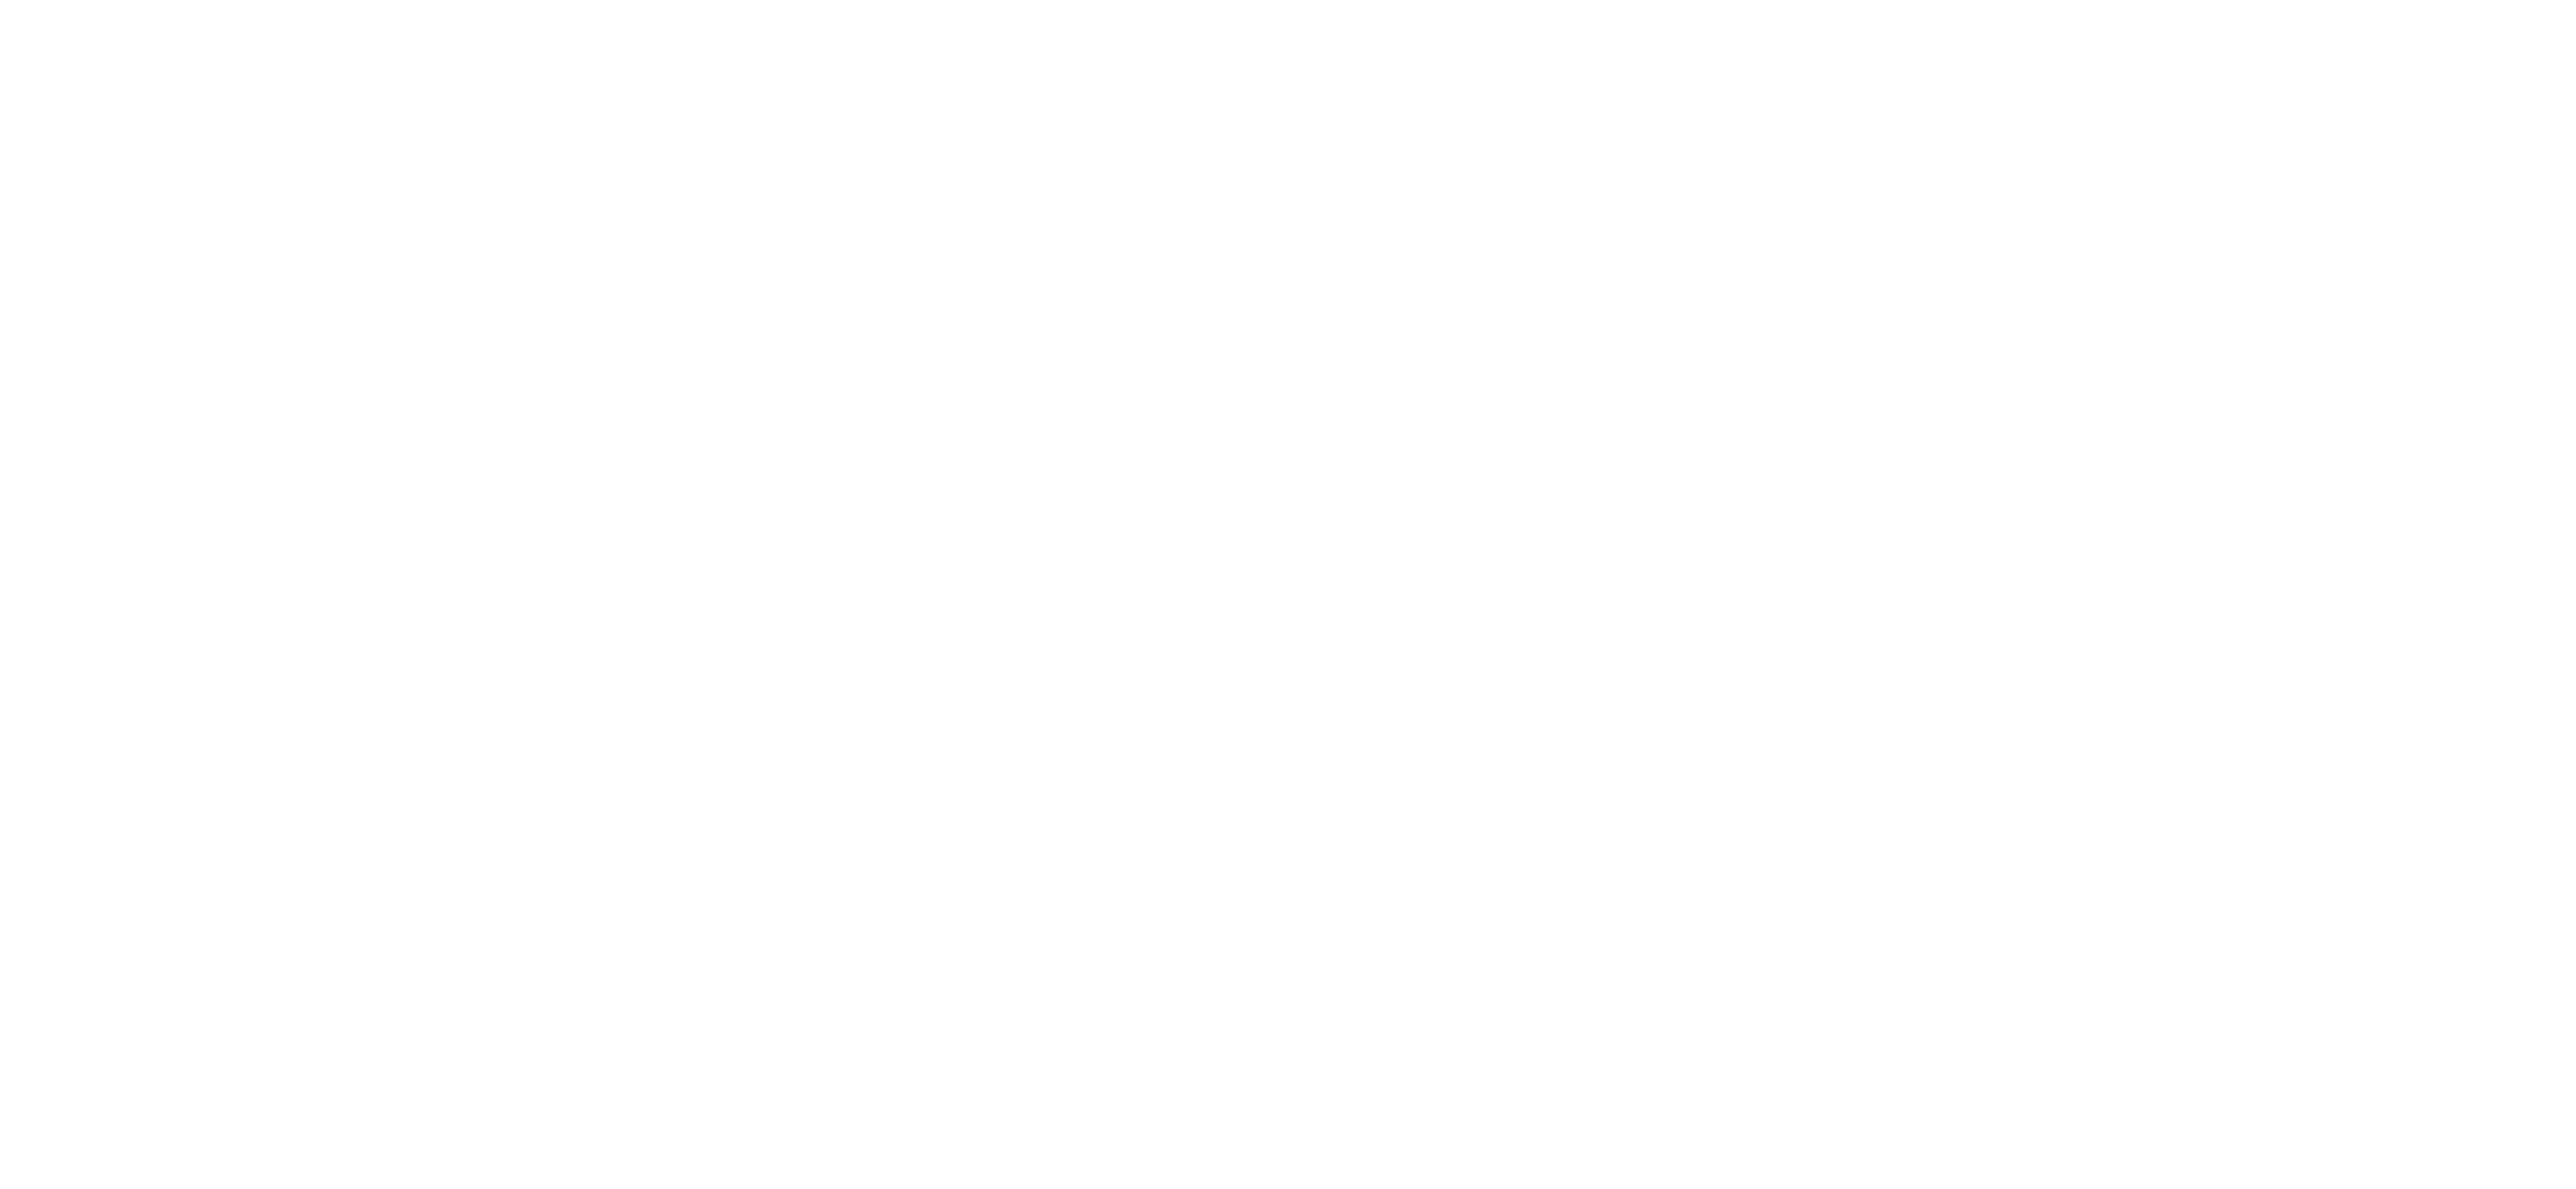 Modern Building Product